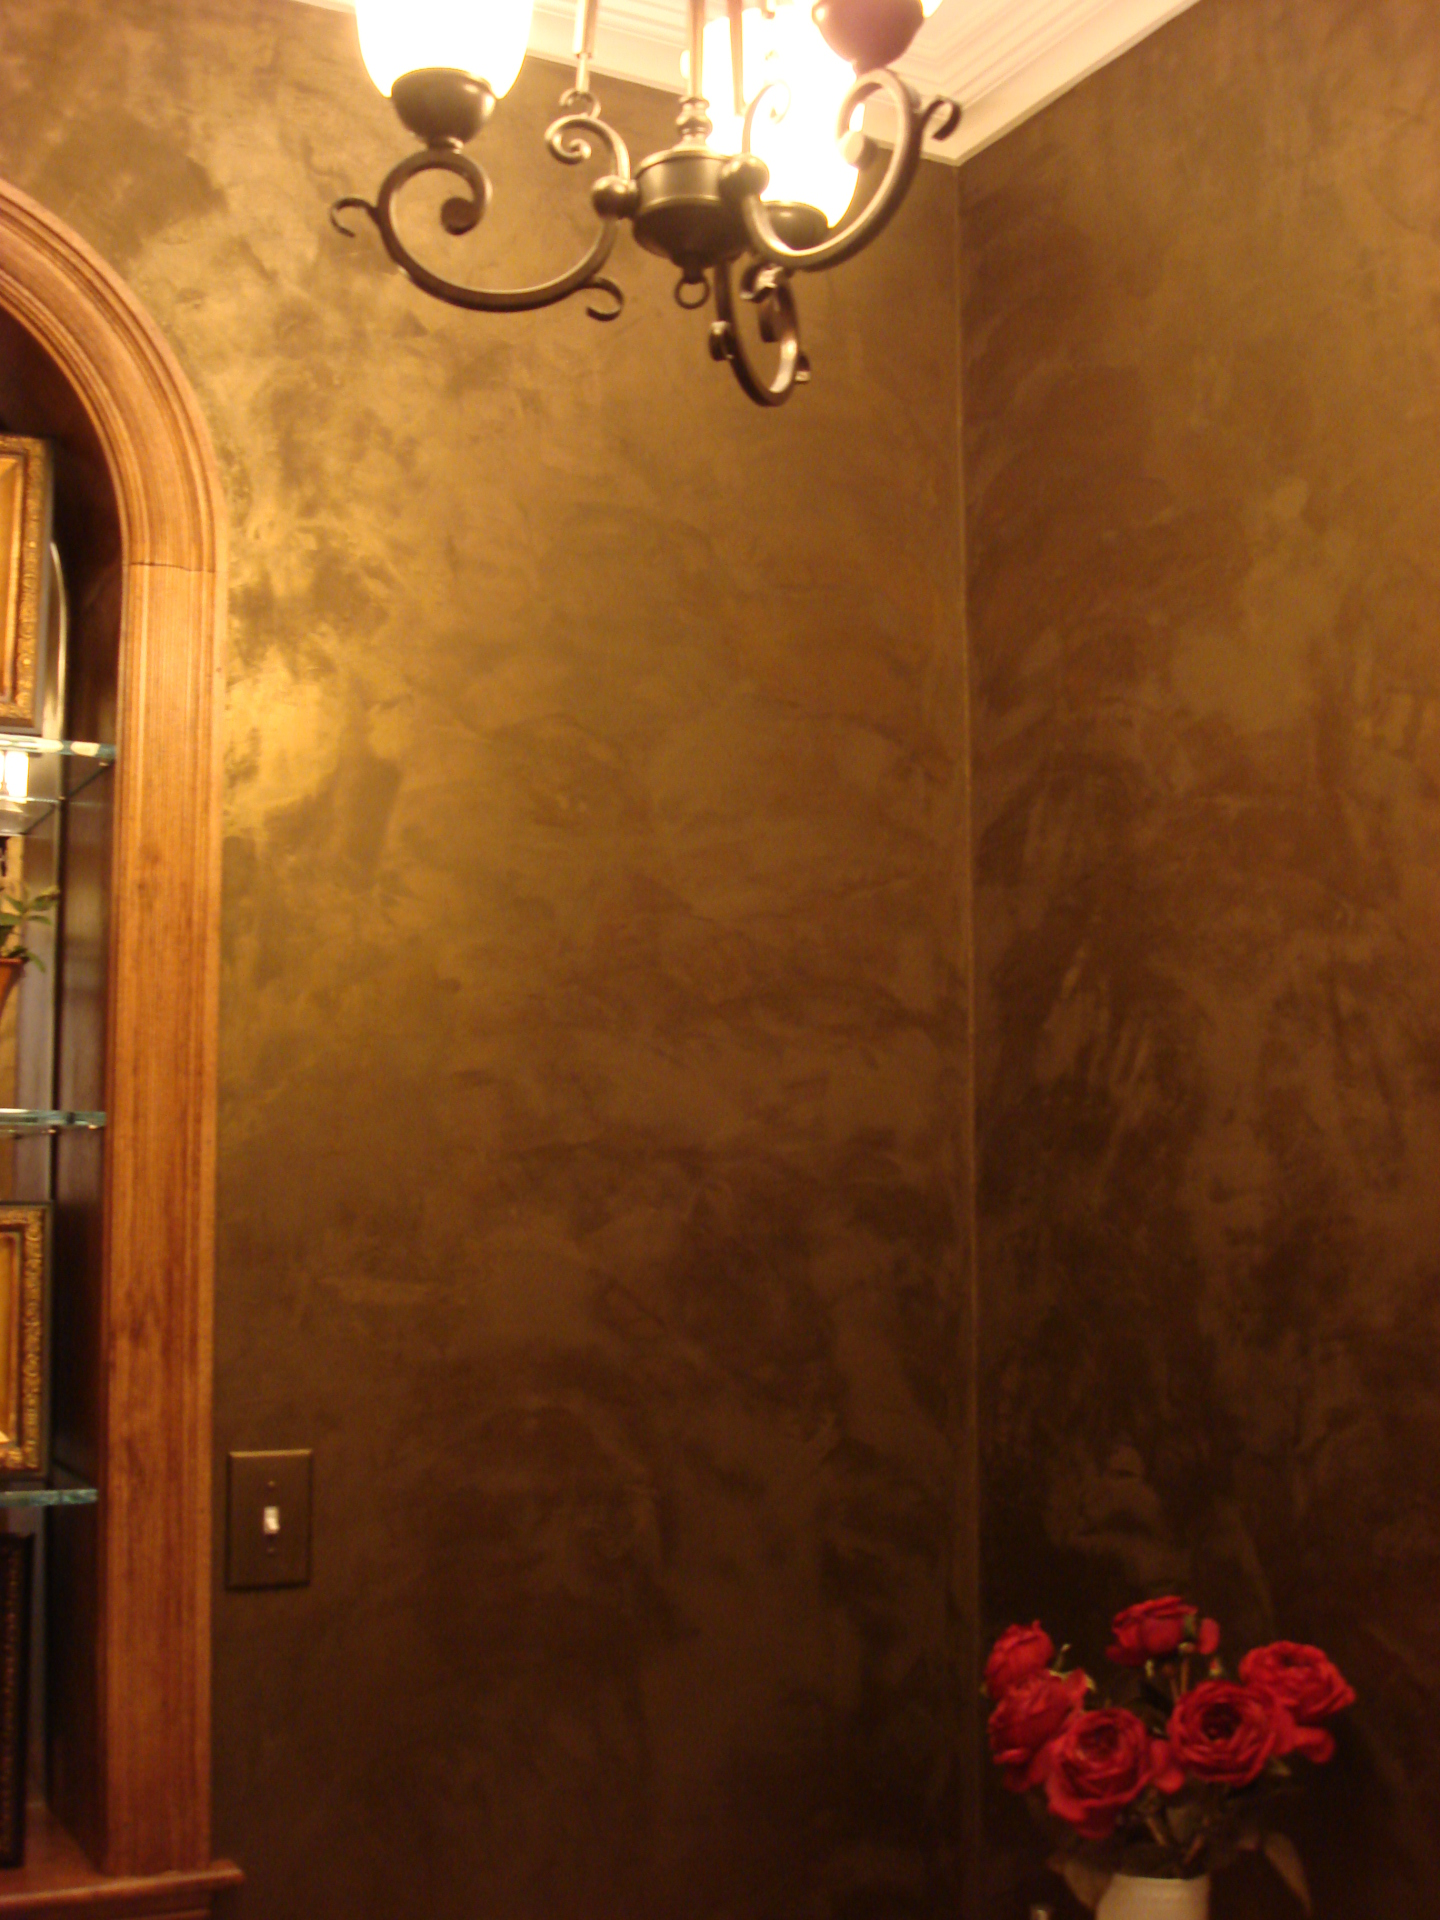 brazil nut portofino metallic plaster finish powder room wakefield faux finish decorative paint raleigh